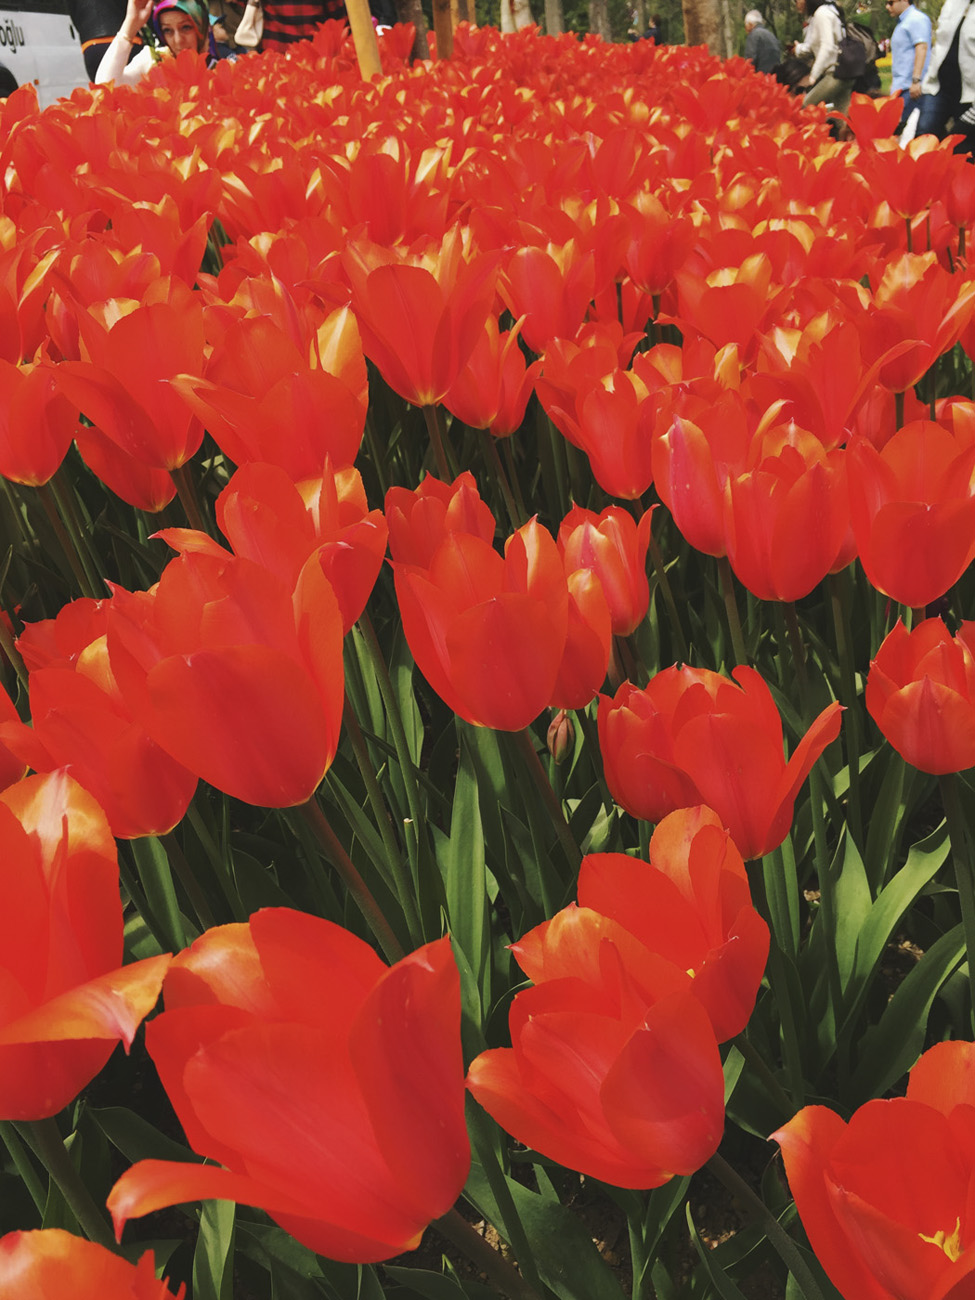 turkey tulips emirgan park